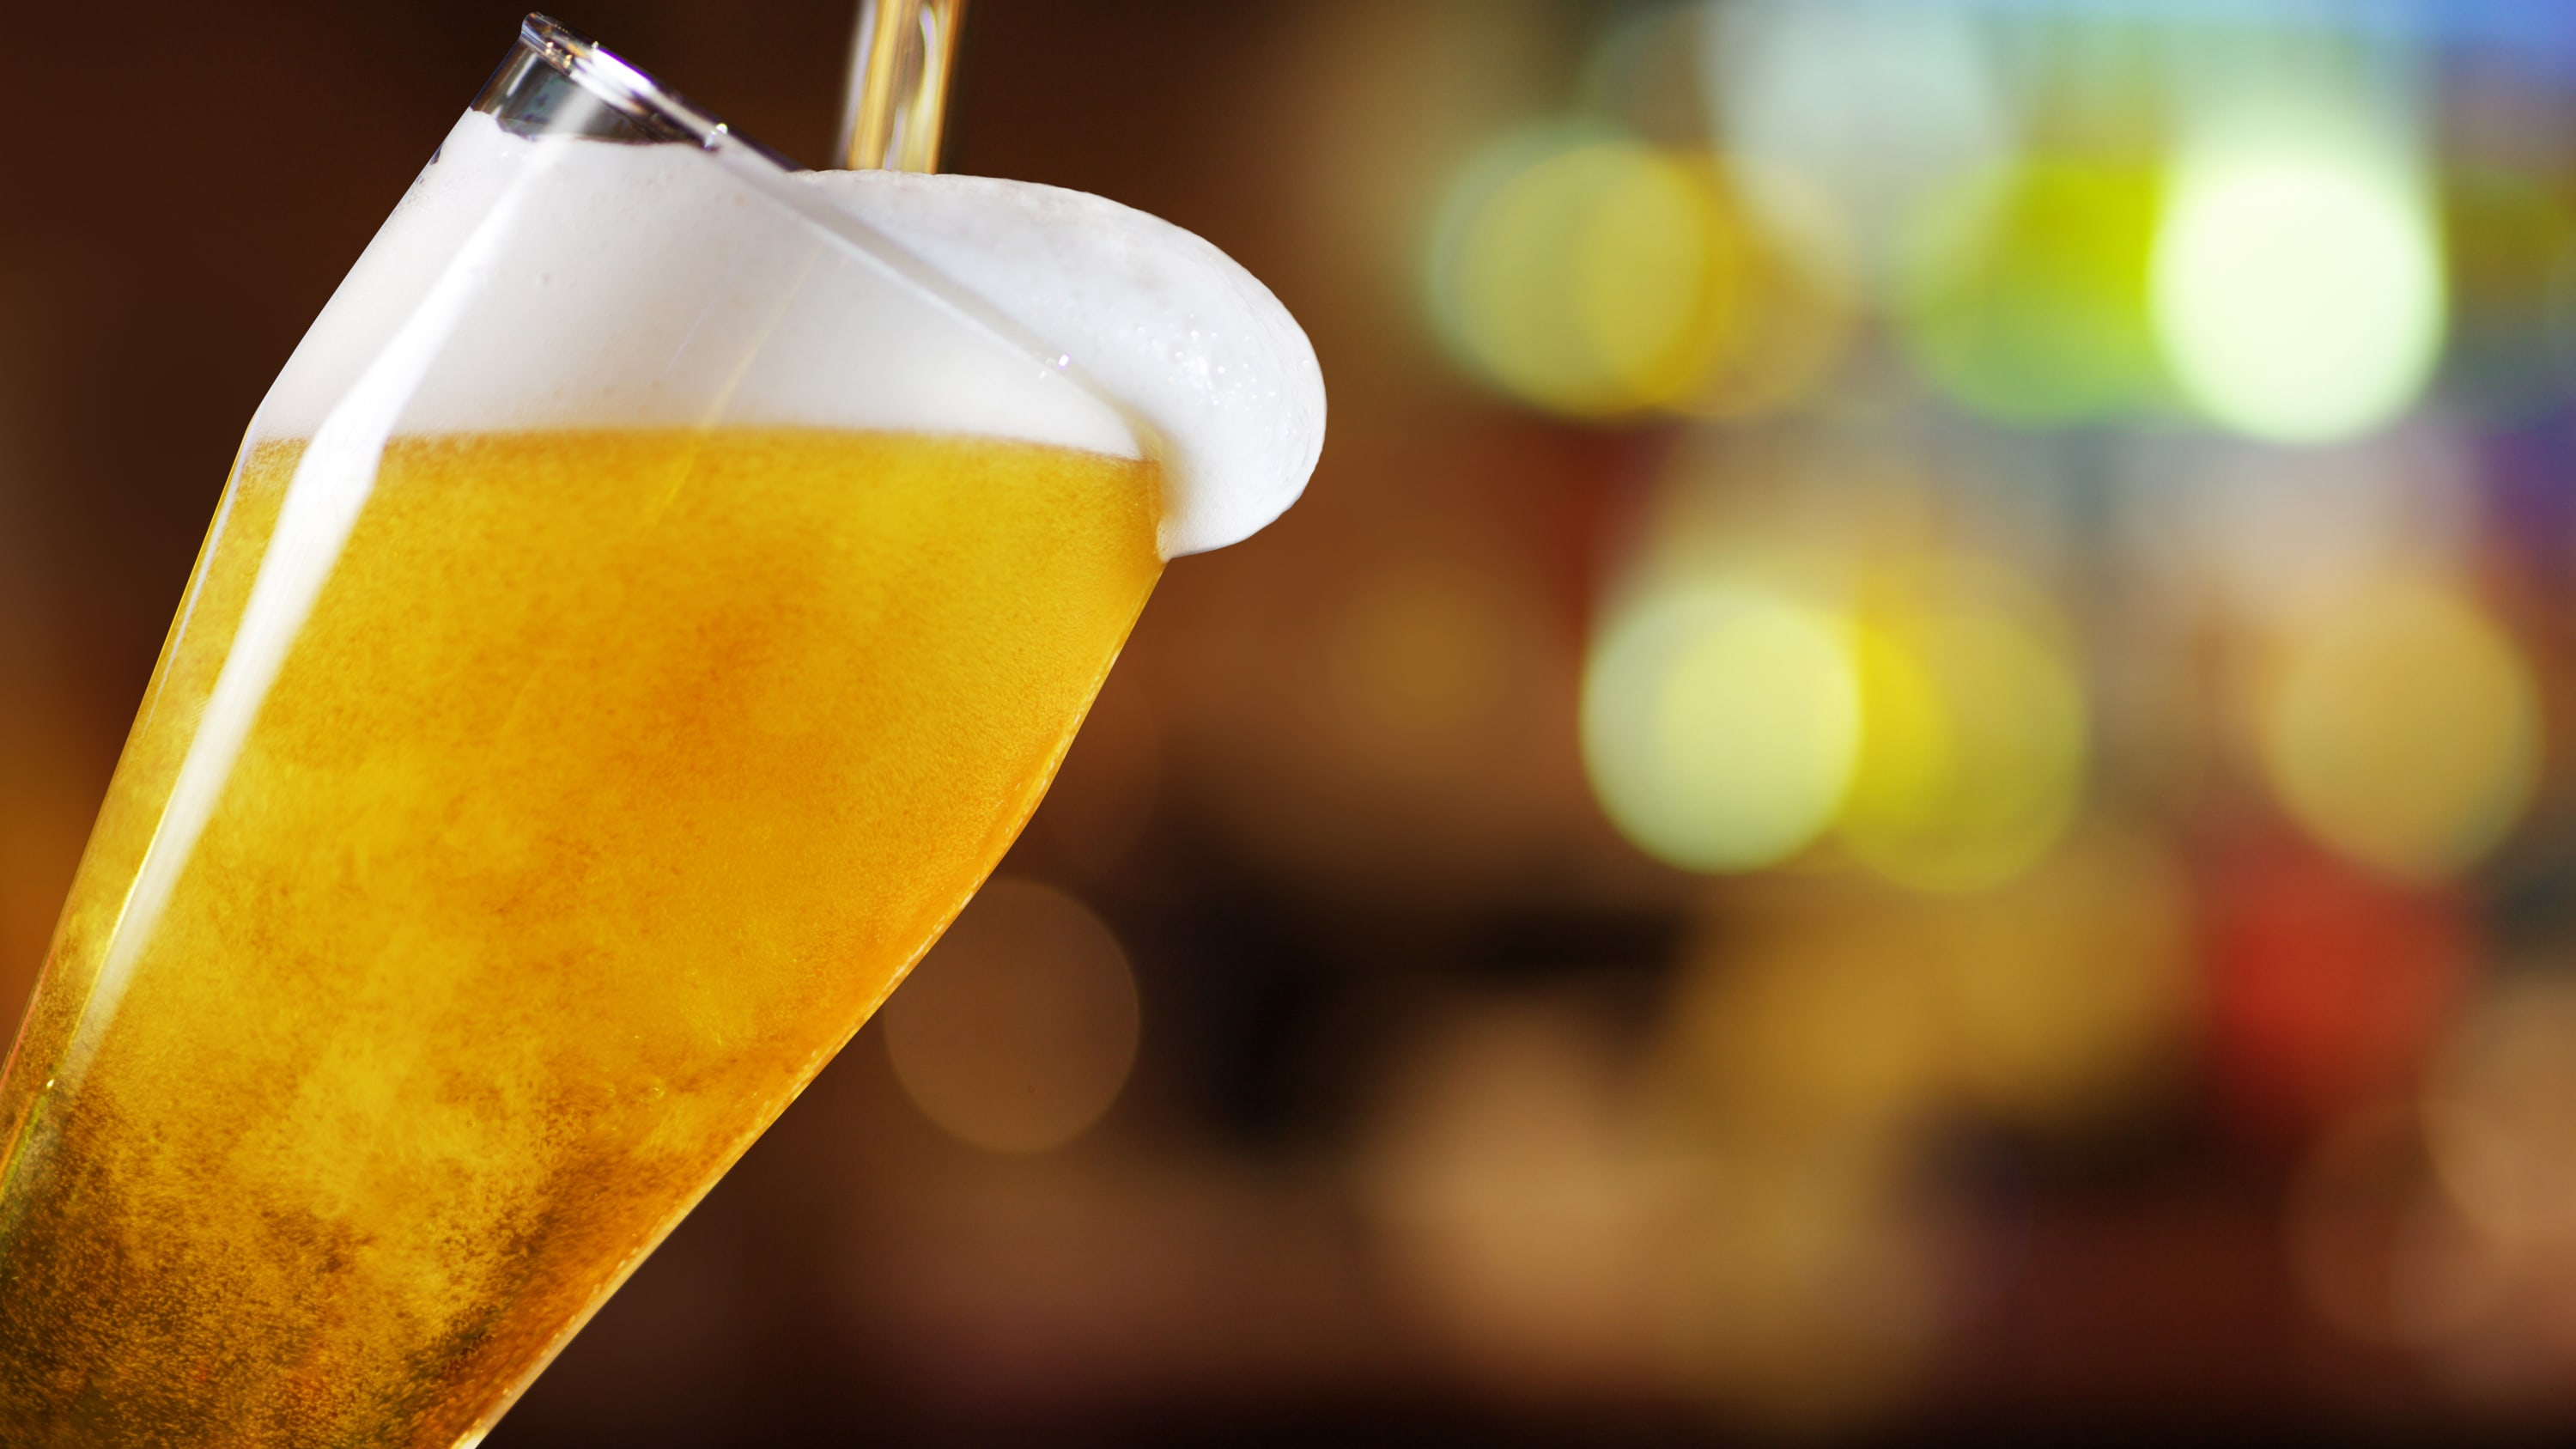 beer, along with other alcoholic drinks, may lead to liver disease.